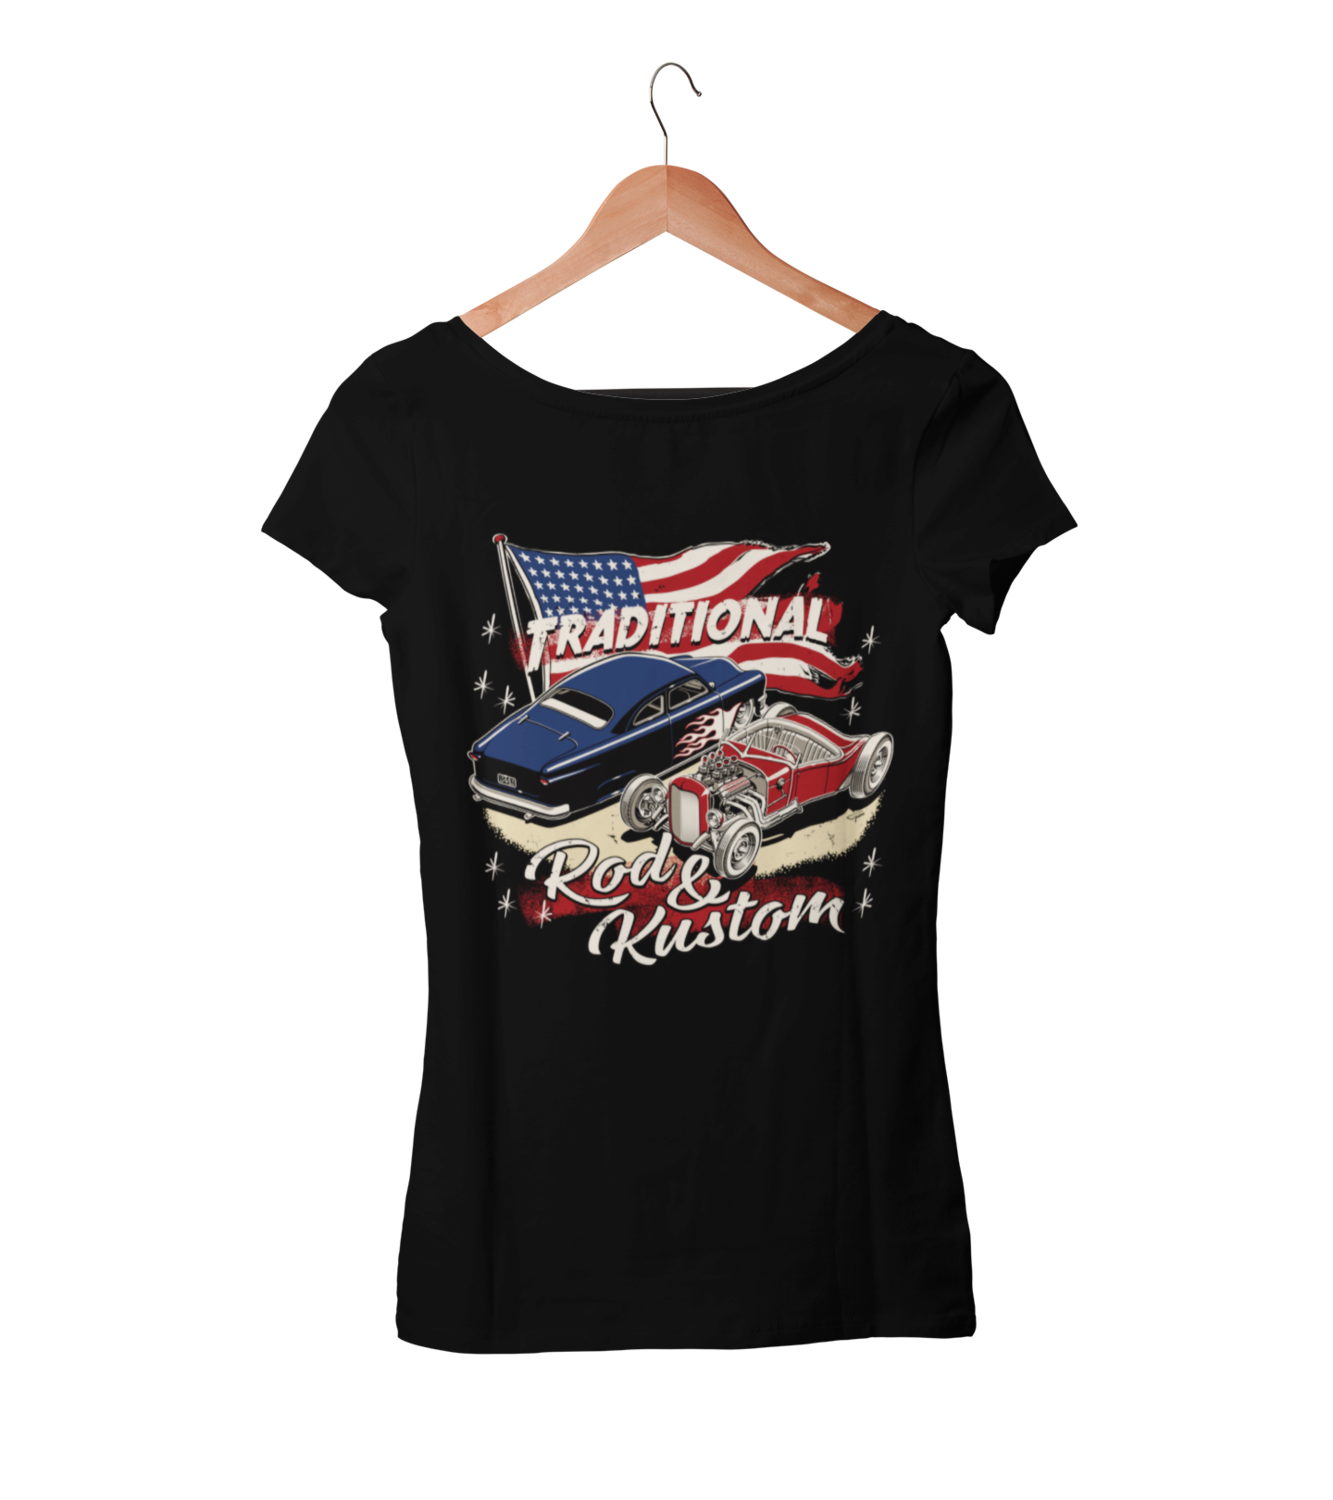 """TRADITIONAL ROD & KUSTOM T-SHIRT WOMAN by Ger """"Dutch Courage"""" Peters artwork"""